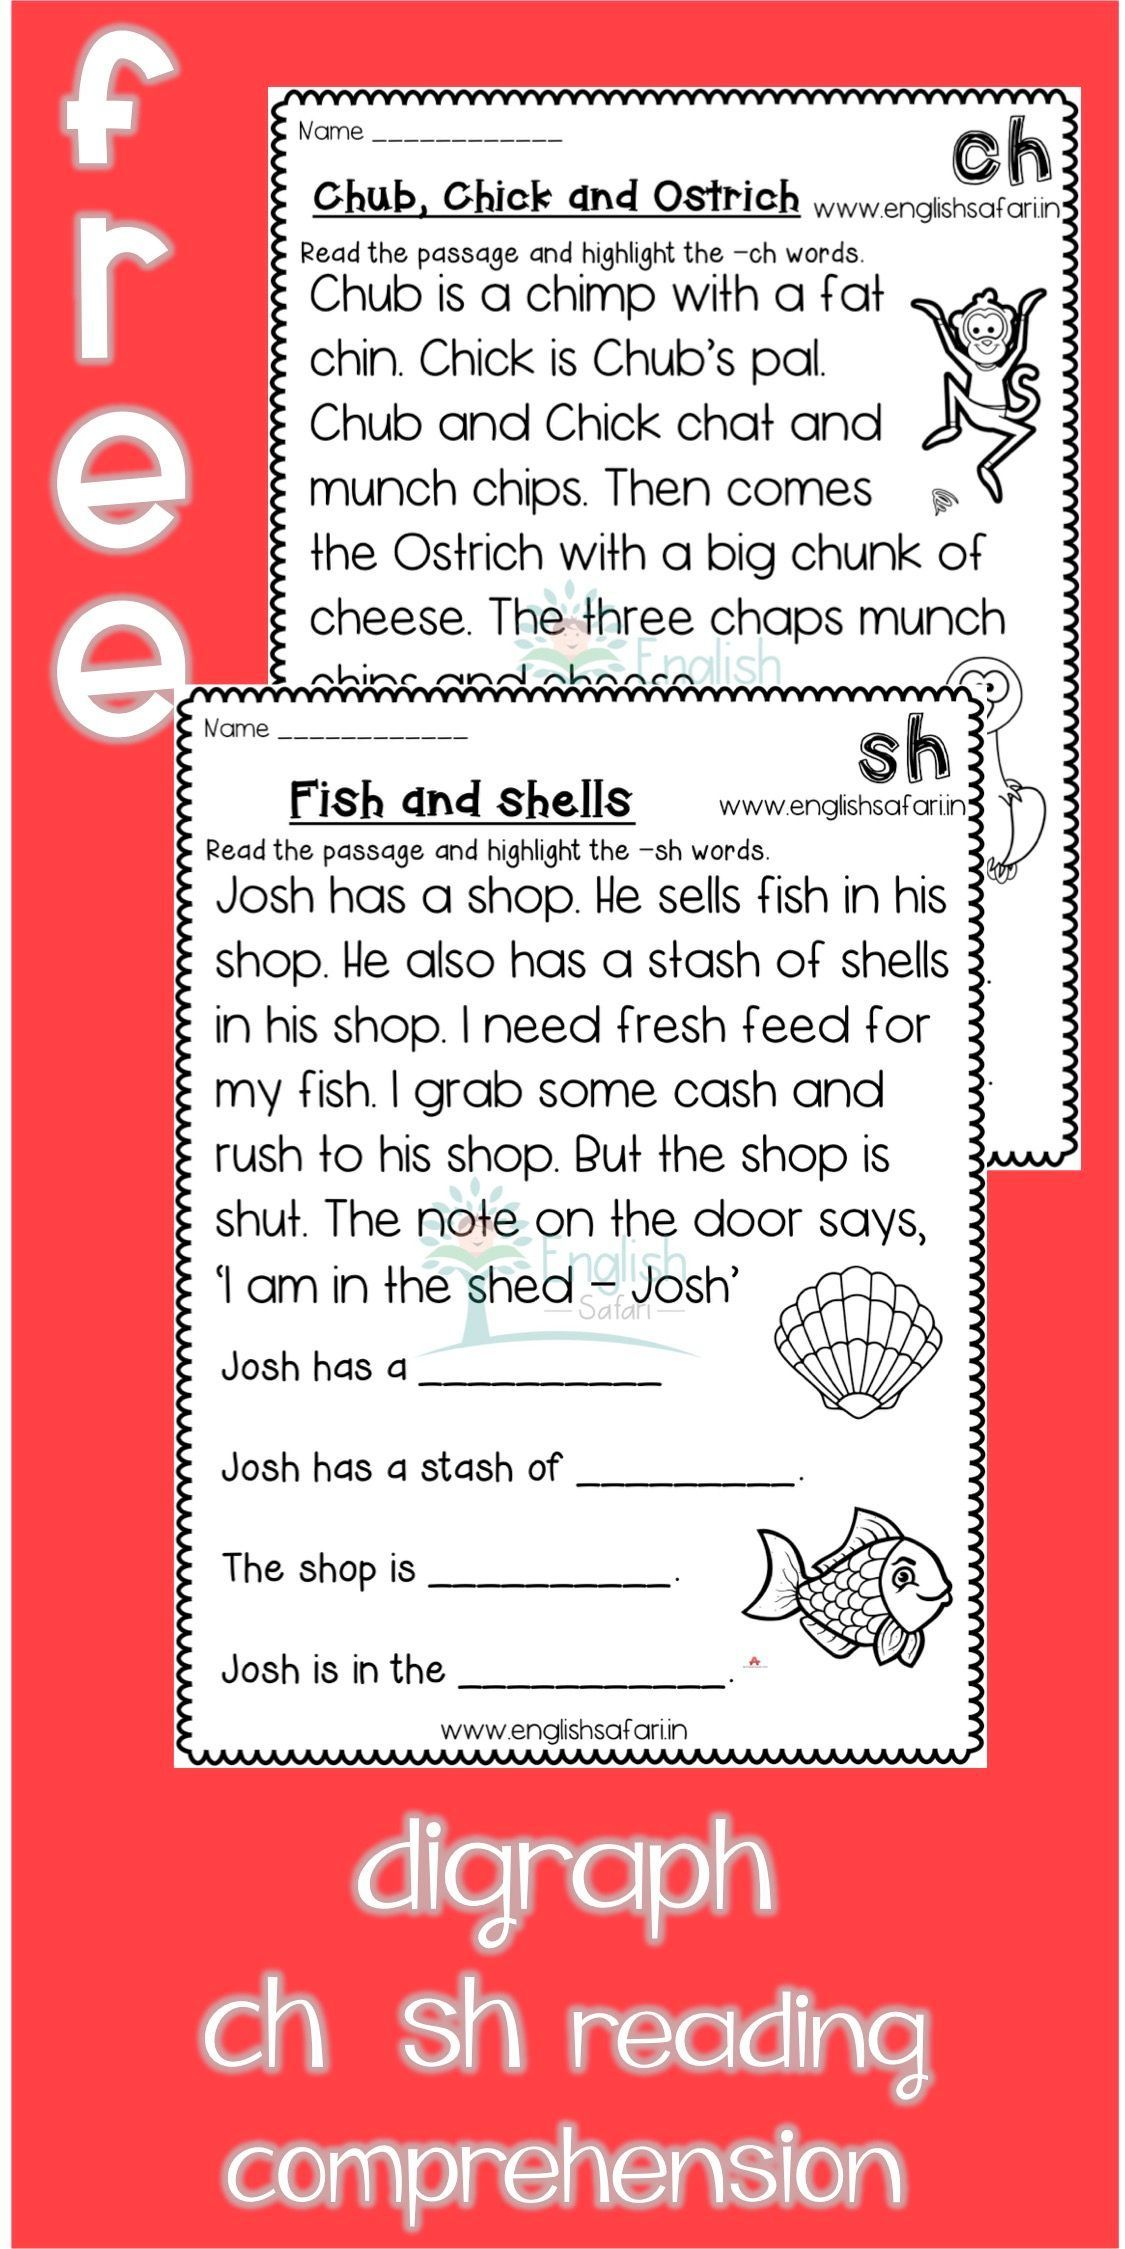 Free Digraphs Reading Comprehension Www Worksheetsenglish Com In 2021 Reading Comprehension Phonics Reading Ch Words [ 2249 x 1125 Pixel ]